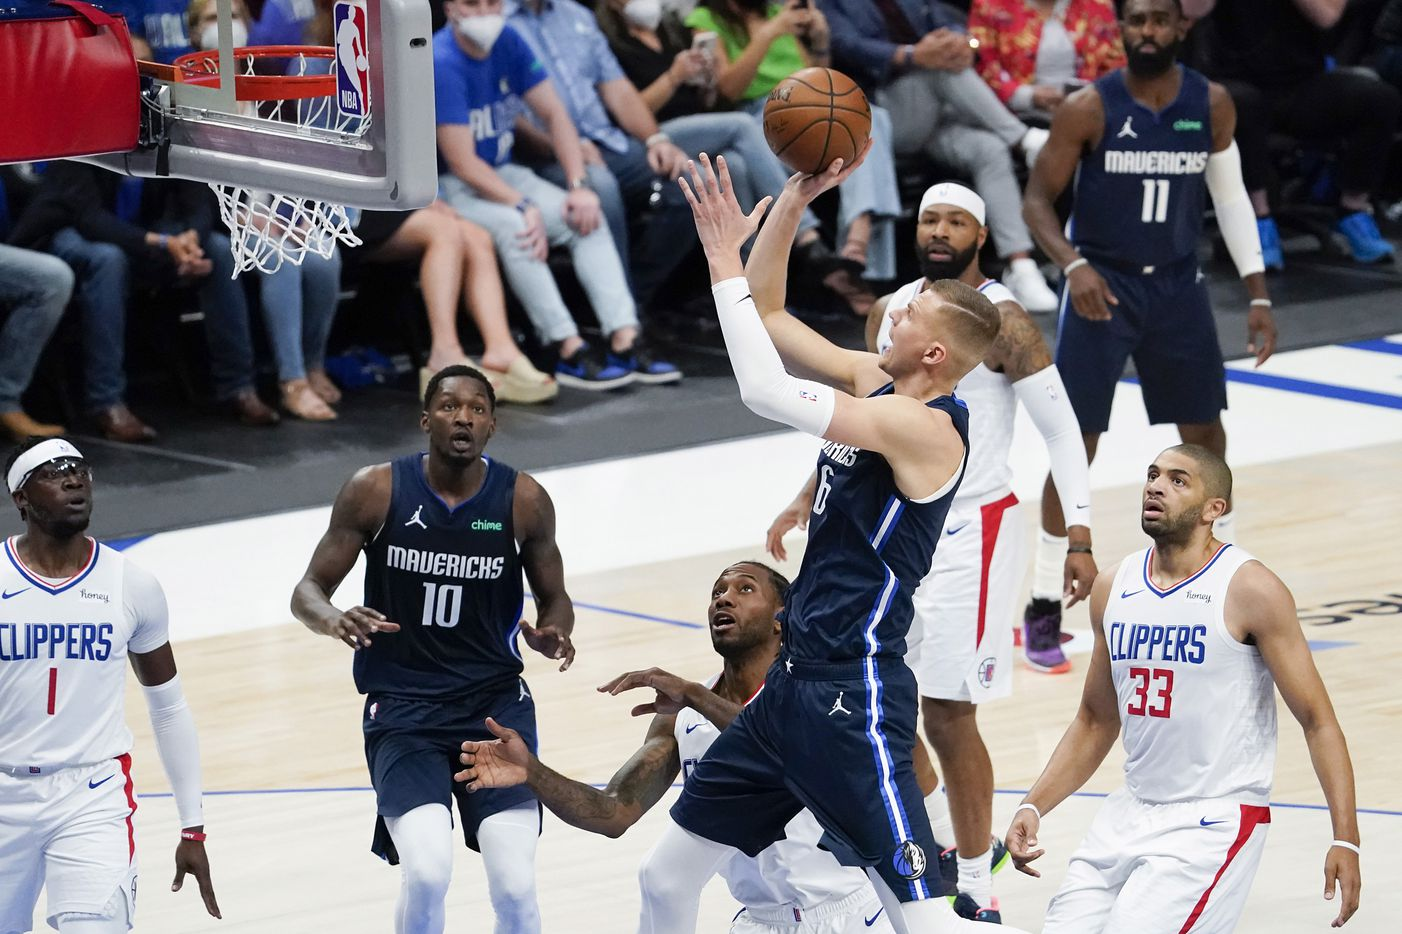 Dallas Mavericks center Kristaps Porzingis (6) shoots over LA Clippers forward Kawhi Leonard (2) during the first quarter of an NBA playoff basketball game at American Airlines Center on Friday, May 28, 2021, in Dallas.